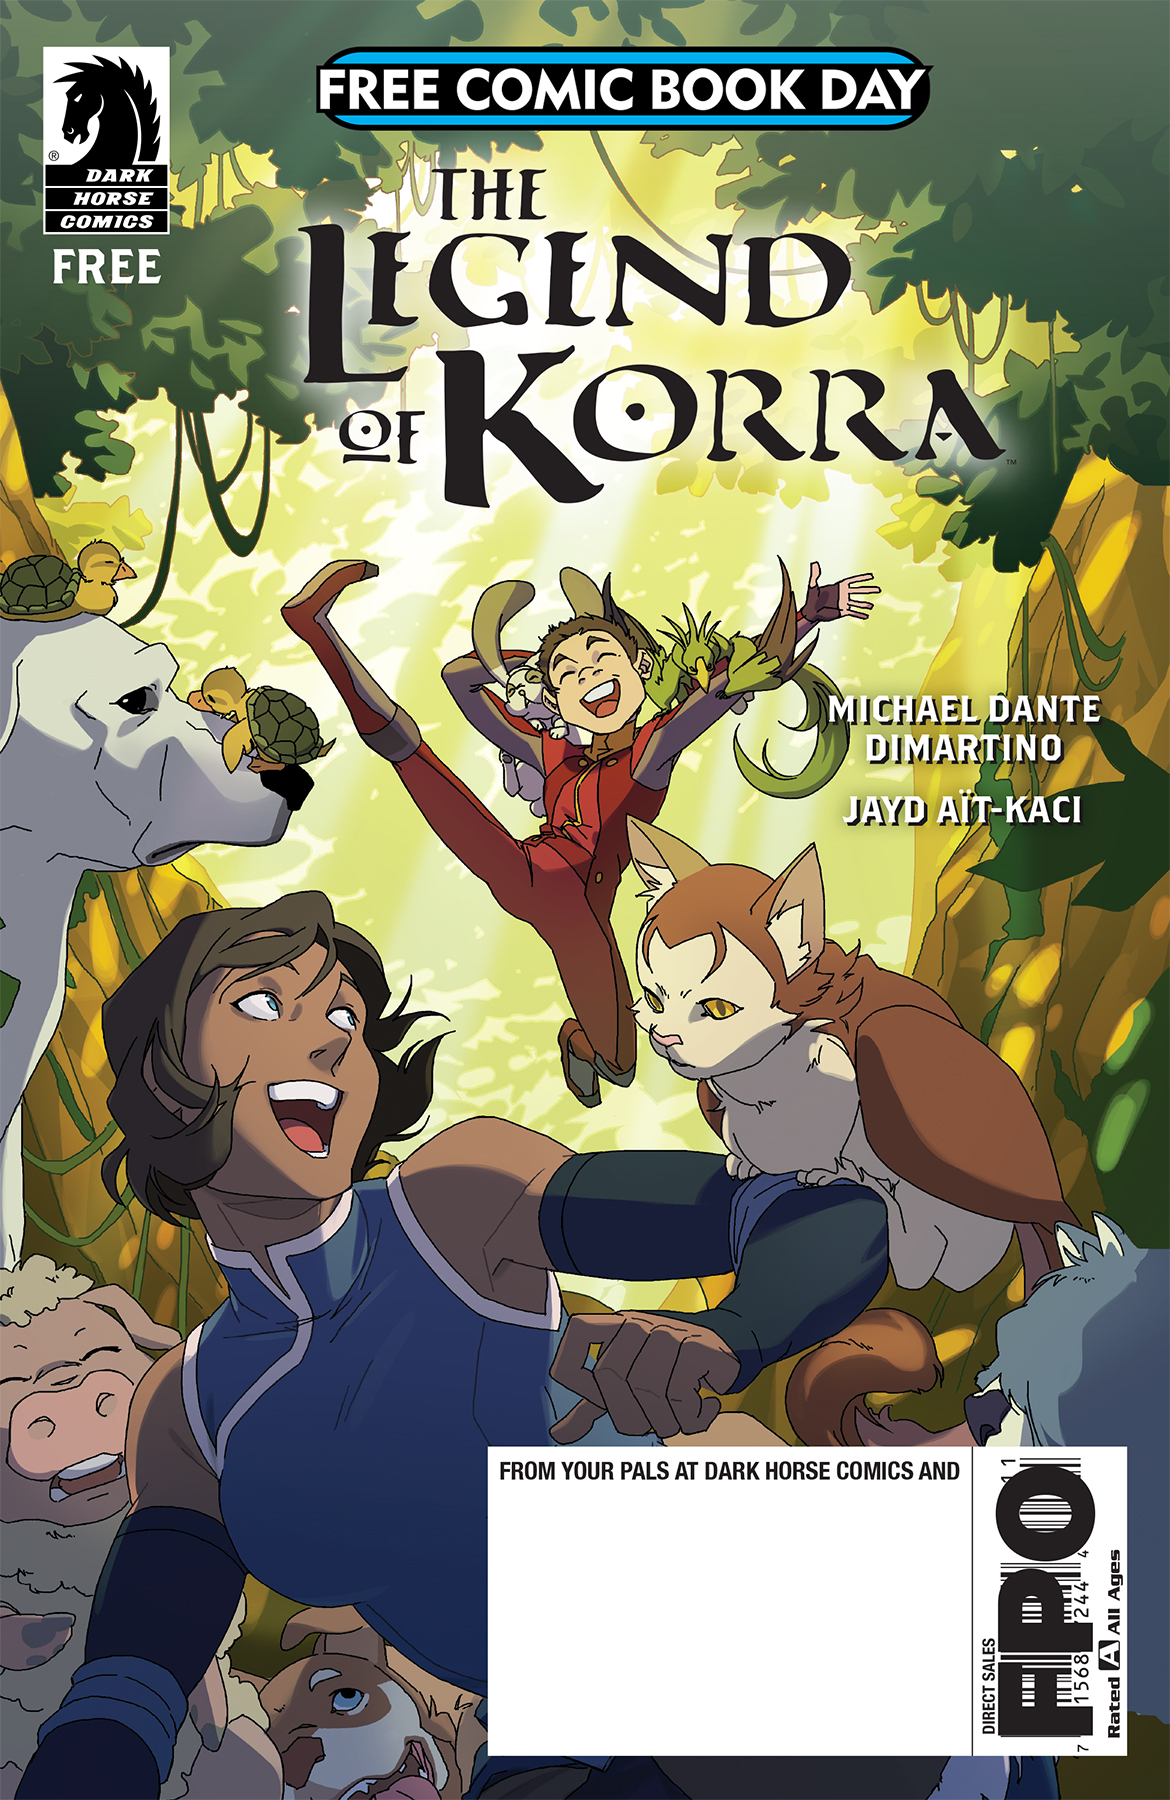 2018 free comic book day silver offering features korra and